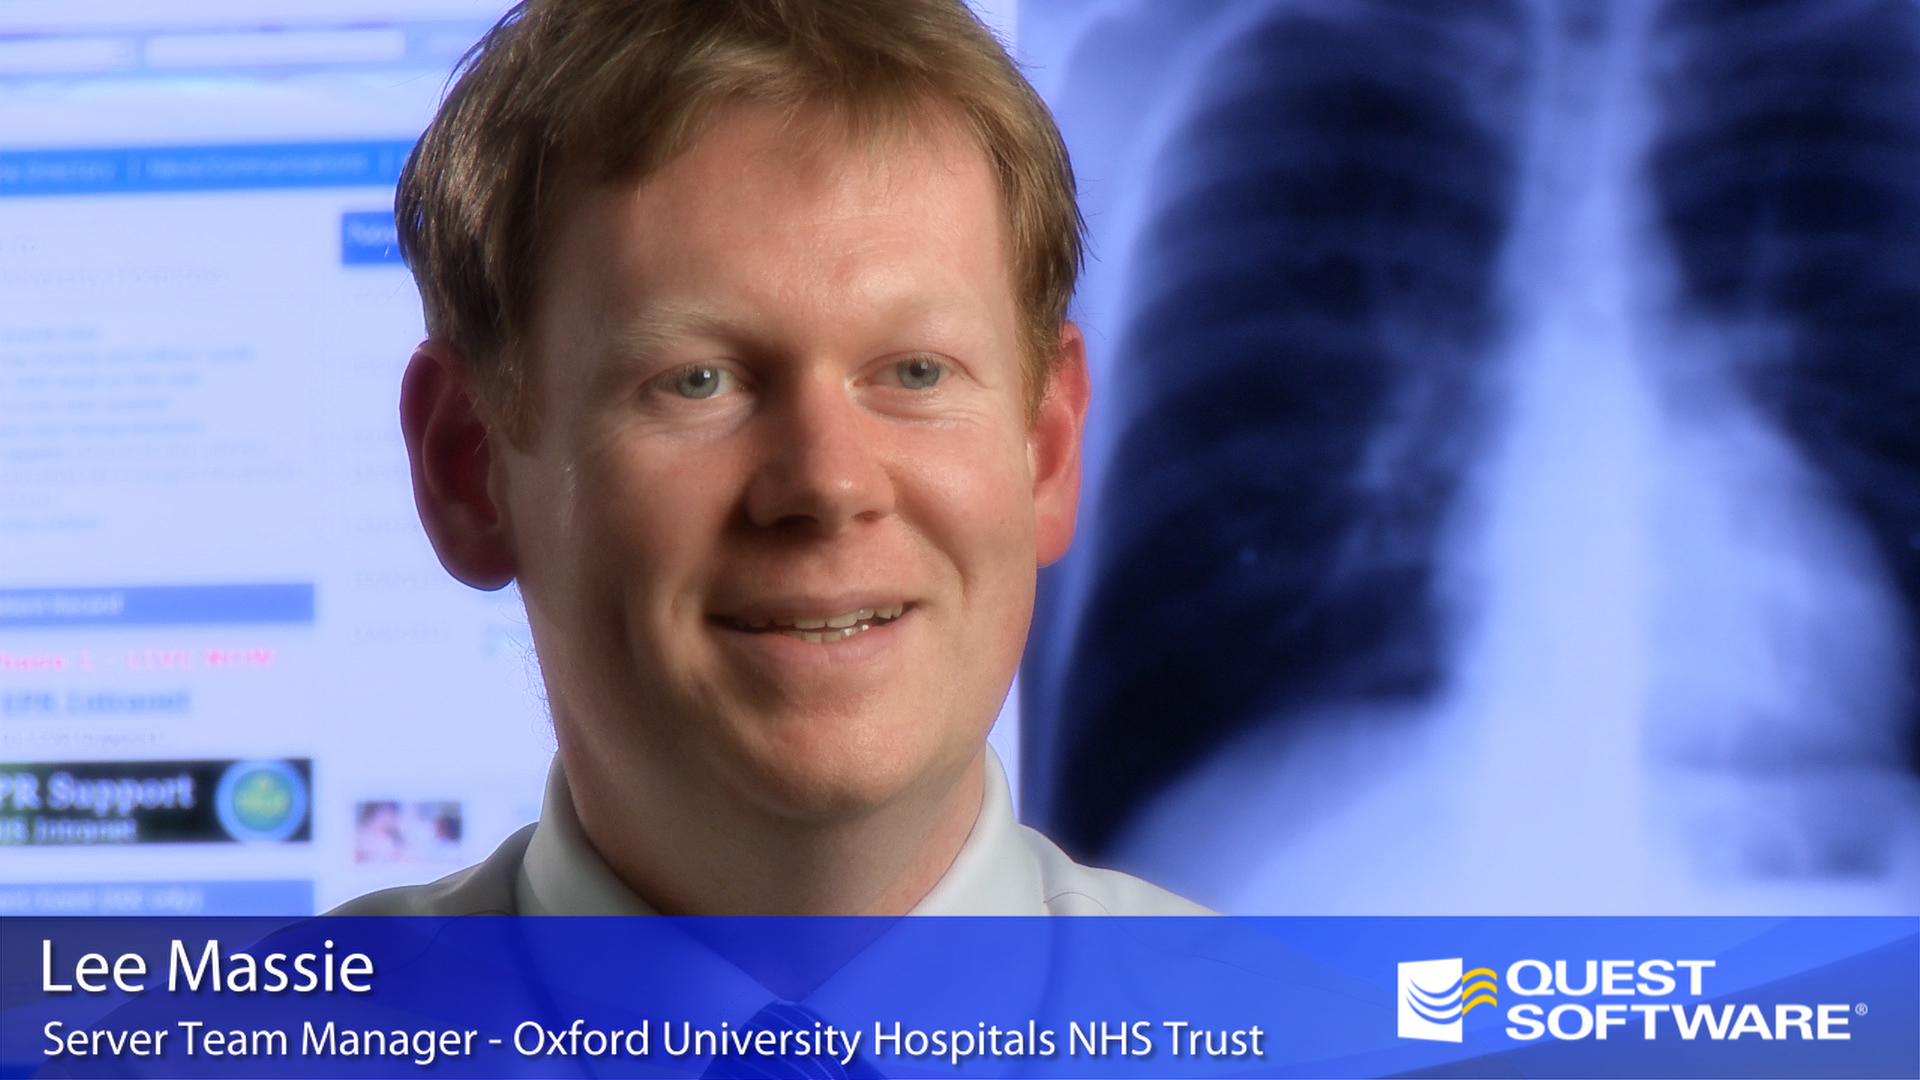 Video Case Study - Oxford University Hospitals NHS Trust